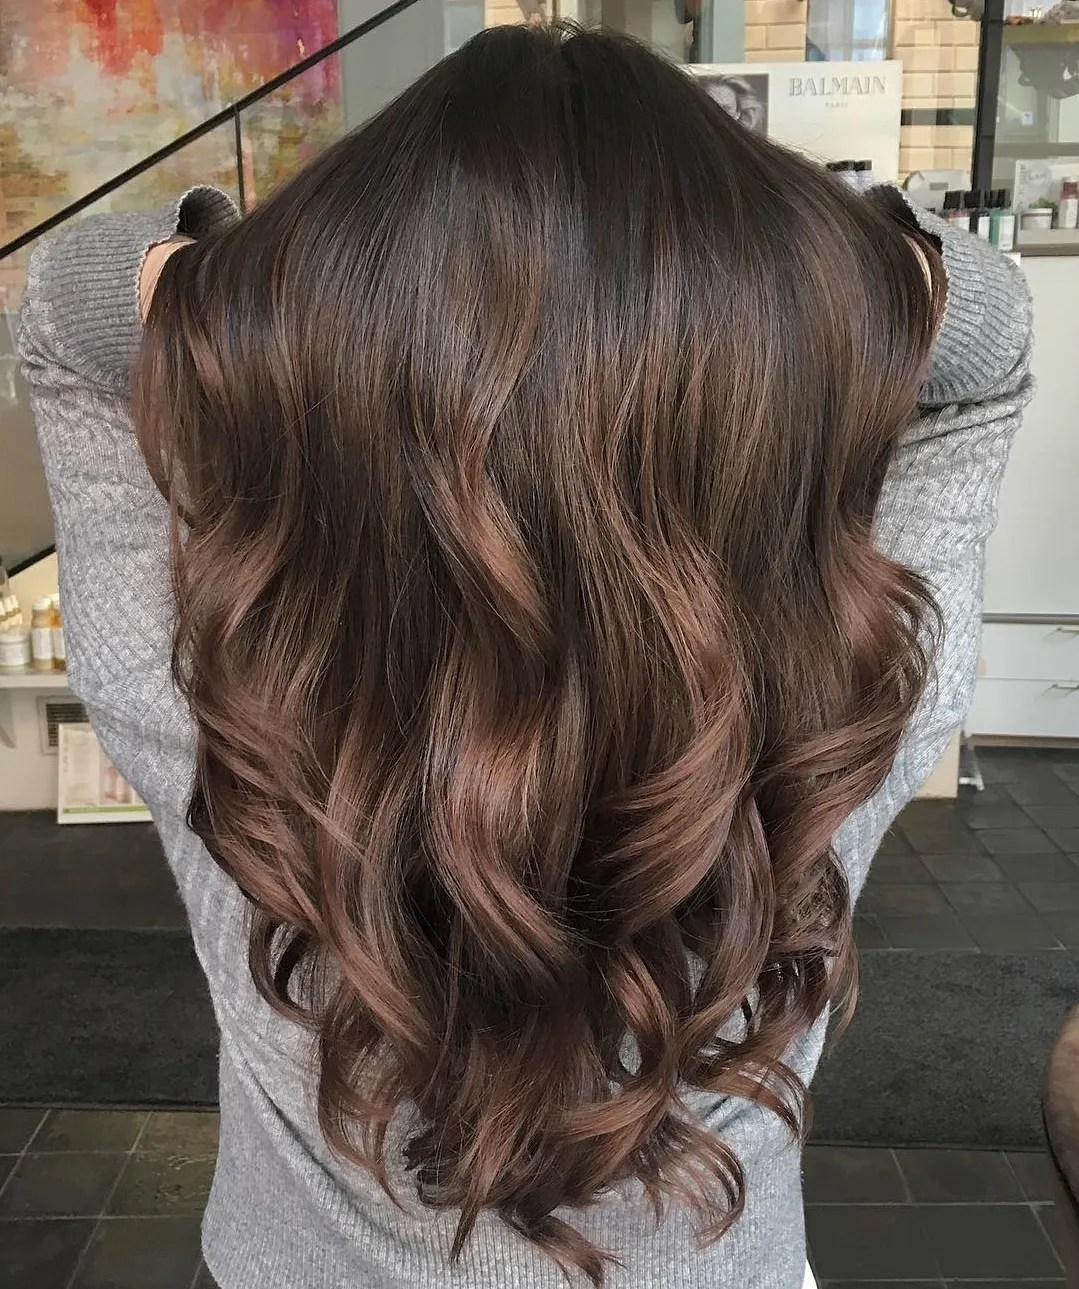 Long Chocolate Hair with Curls